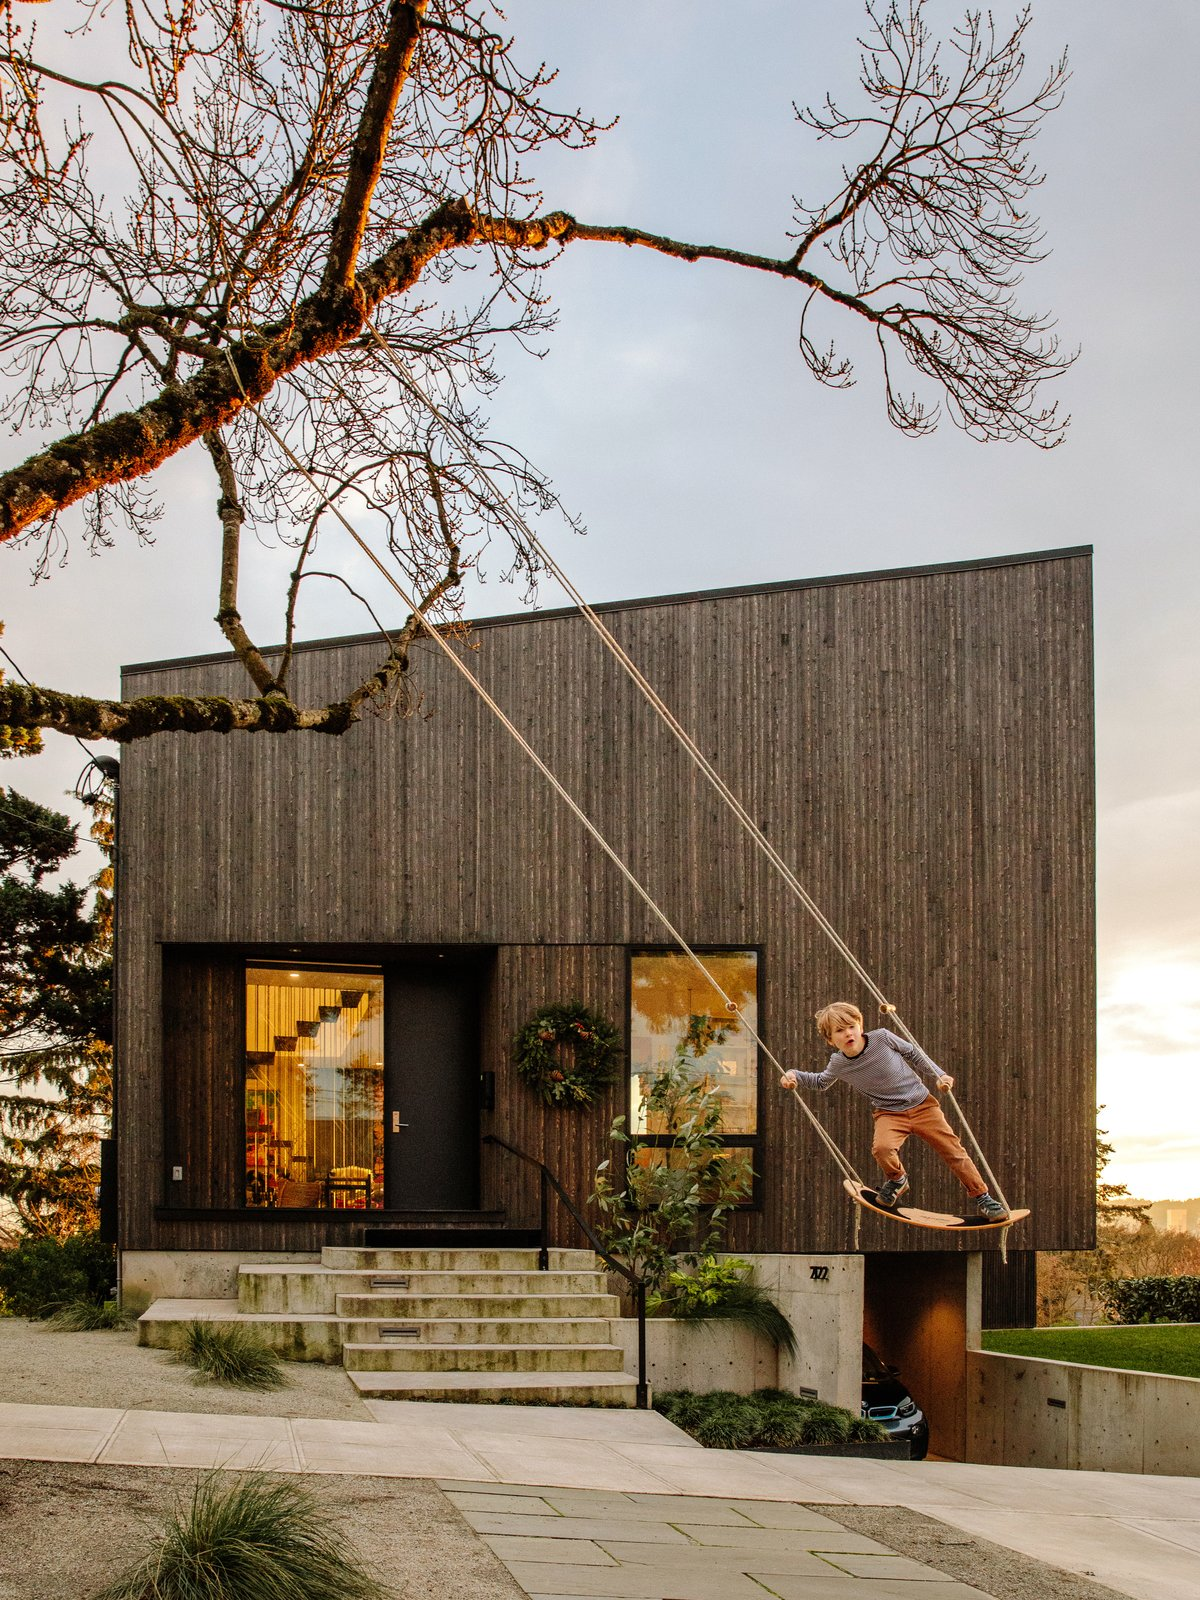 """Exterior, Shed RoofLine, House Building Type, and Wood Siding Material In 2013, Jennifer Warner and Cara Frey fell in love with a modest but charming 1920s house within walking distance of their bungalow. The dwelling was dramatically sited, with great views of Portland's southwest hills and downtown. But according to Michael Leckie, the Vancouver–based architect they eventually hired, """"It was the dumpiest house on the block."""" Leckie replaced the house with a simple, modern design, using a basic square wood box that skews into a rhombus form, which he topped with a sloping roof. Their son, William, 6, swings in front of the cedar-clad house.  Photo 6 of 21 in Dwell's Top 10 Home Tours of 2019 from A Darkened Cedar Dwelling in Portland Embodies """"Less But Better"""" Design"""